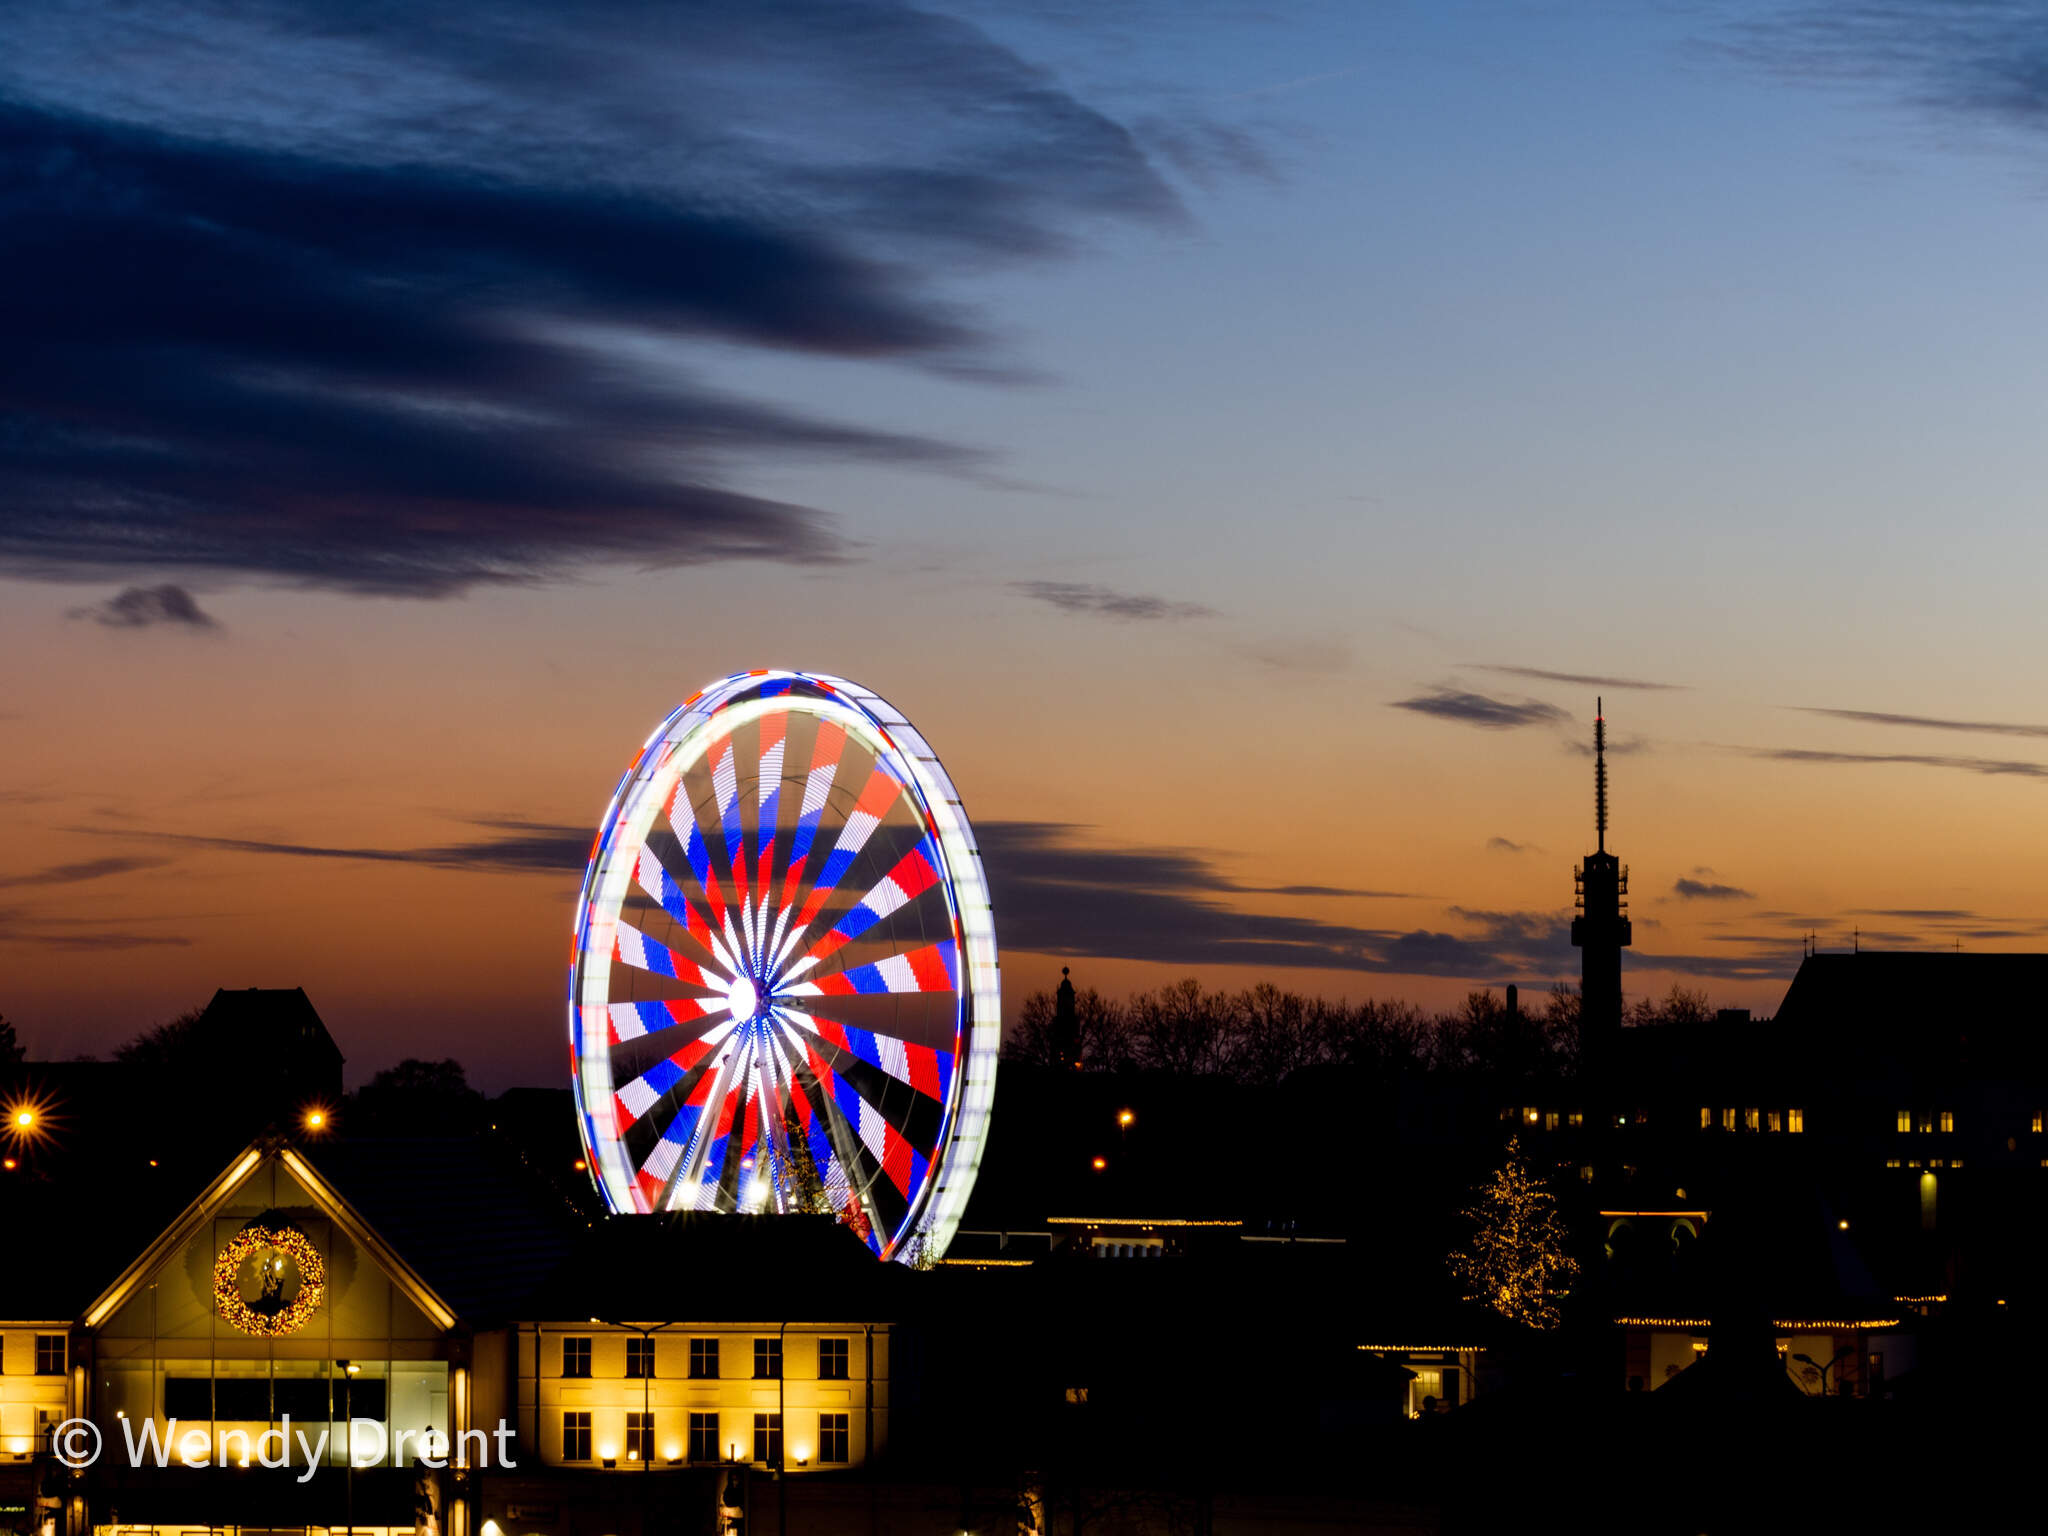 roermond, wendy drent, reuzenrad, ferris wheel, outlet, outlet center,  long exposure, evening, light, netherlands